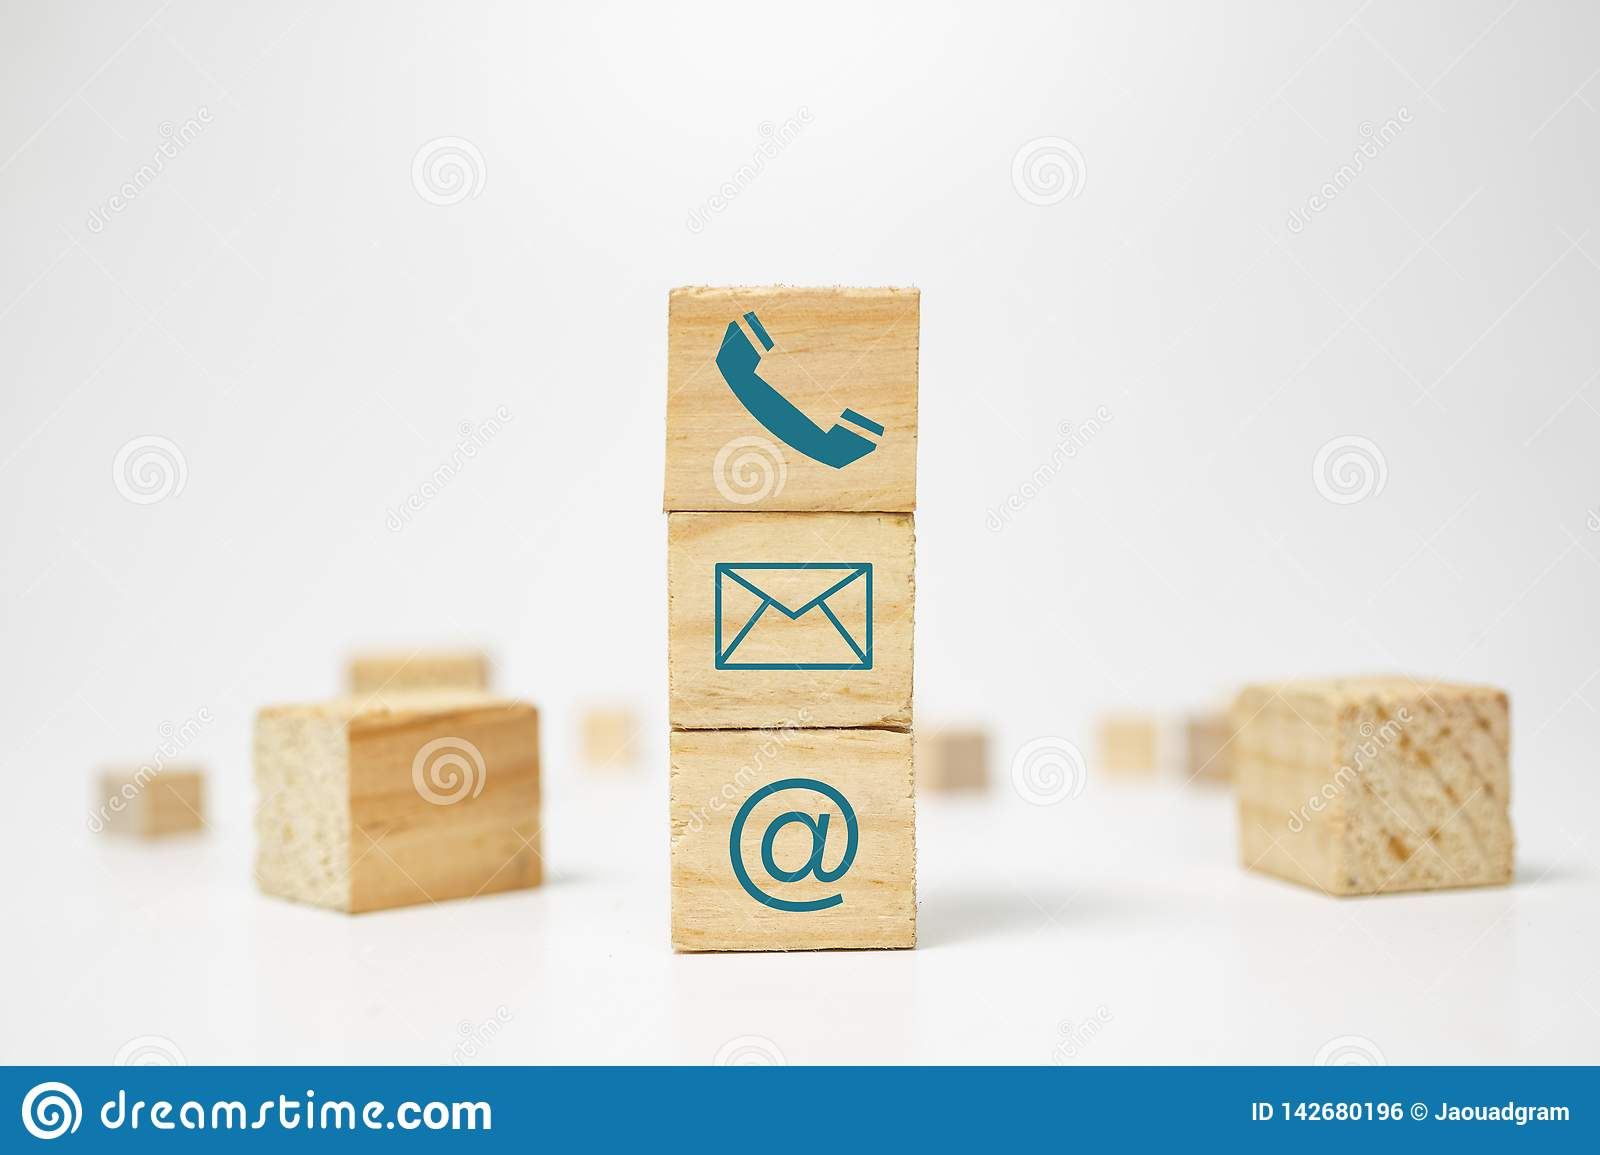 Wooden block cube symbol telephone, email, address. Website page contact us or e-mail marketing concept